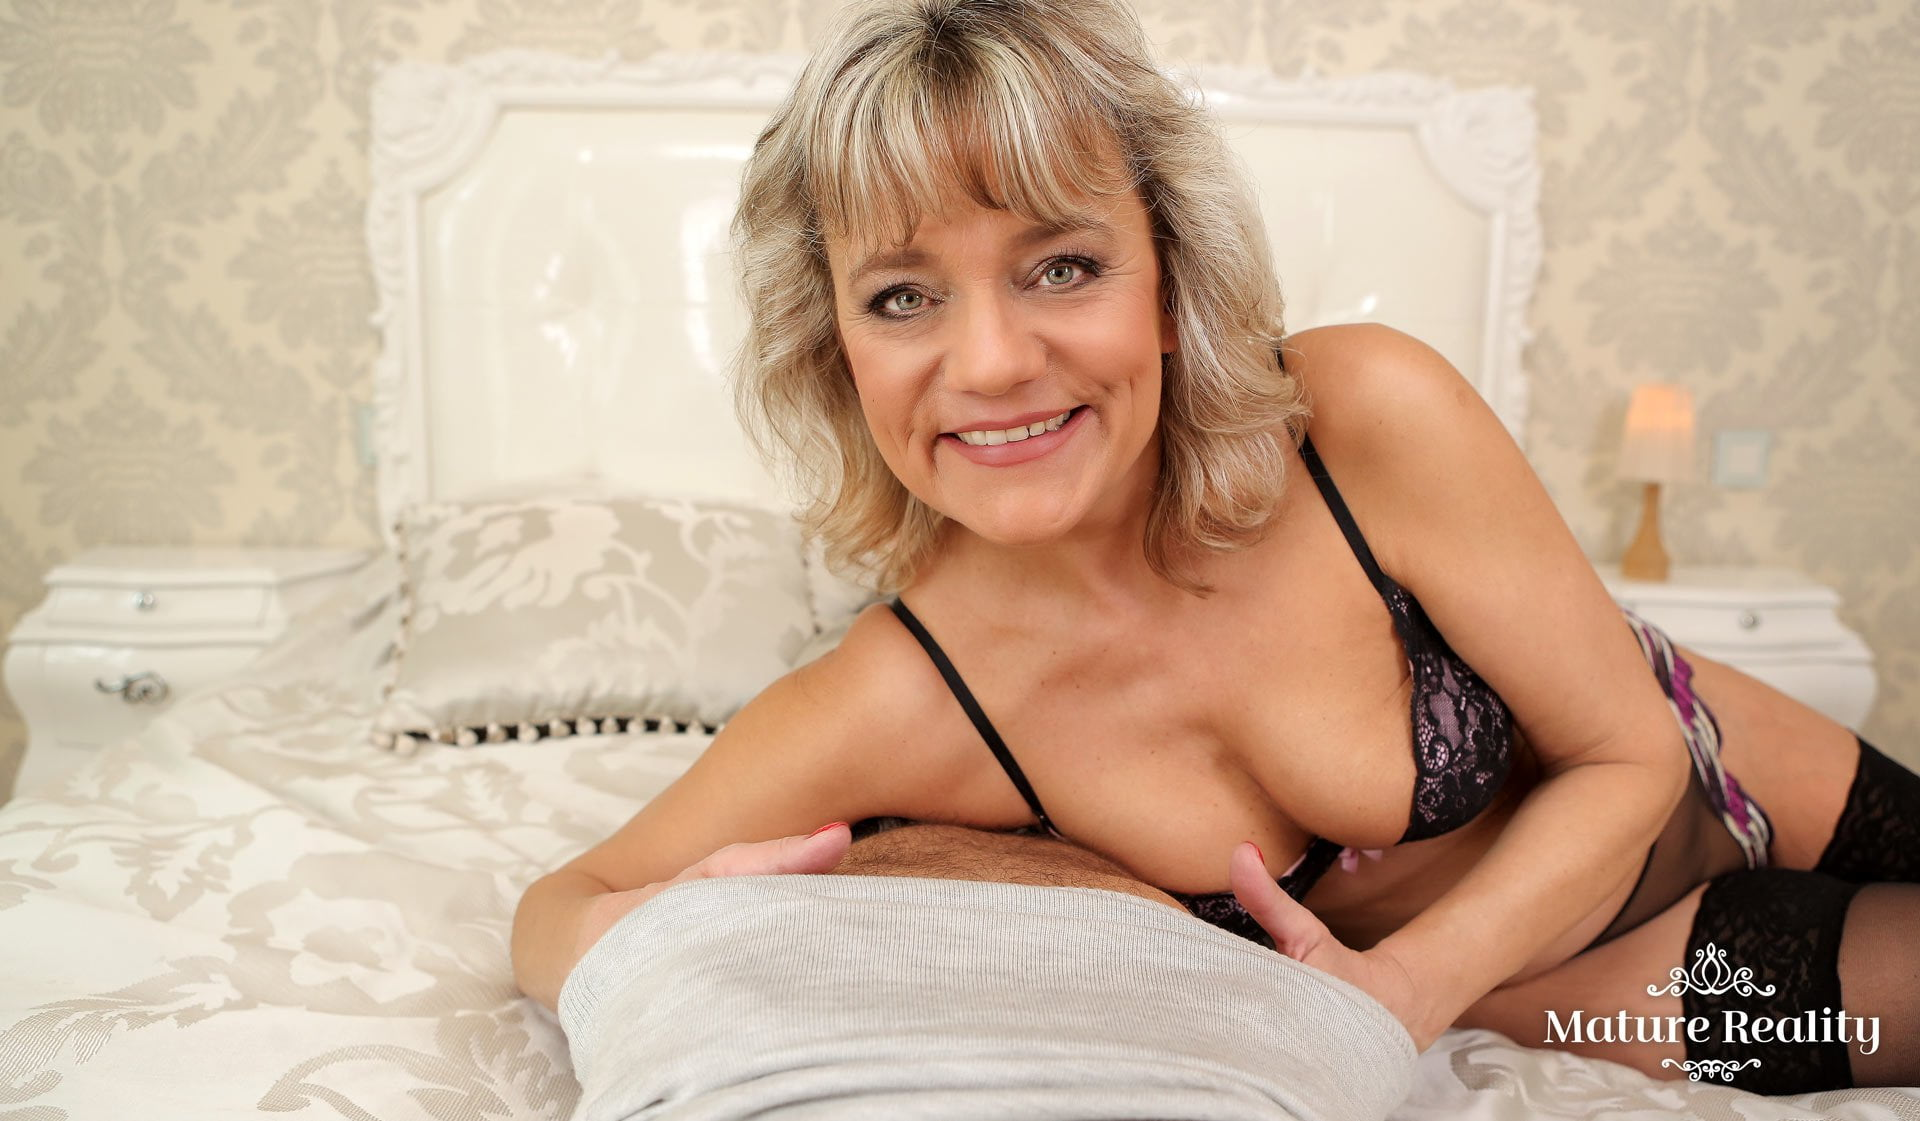 Mature granny porn video